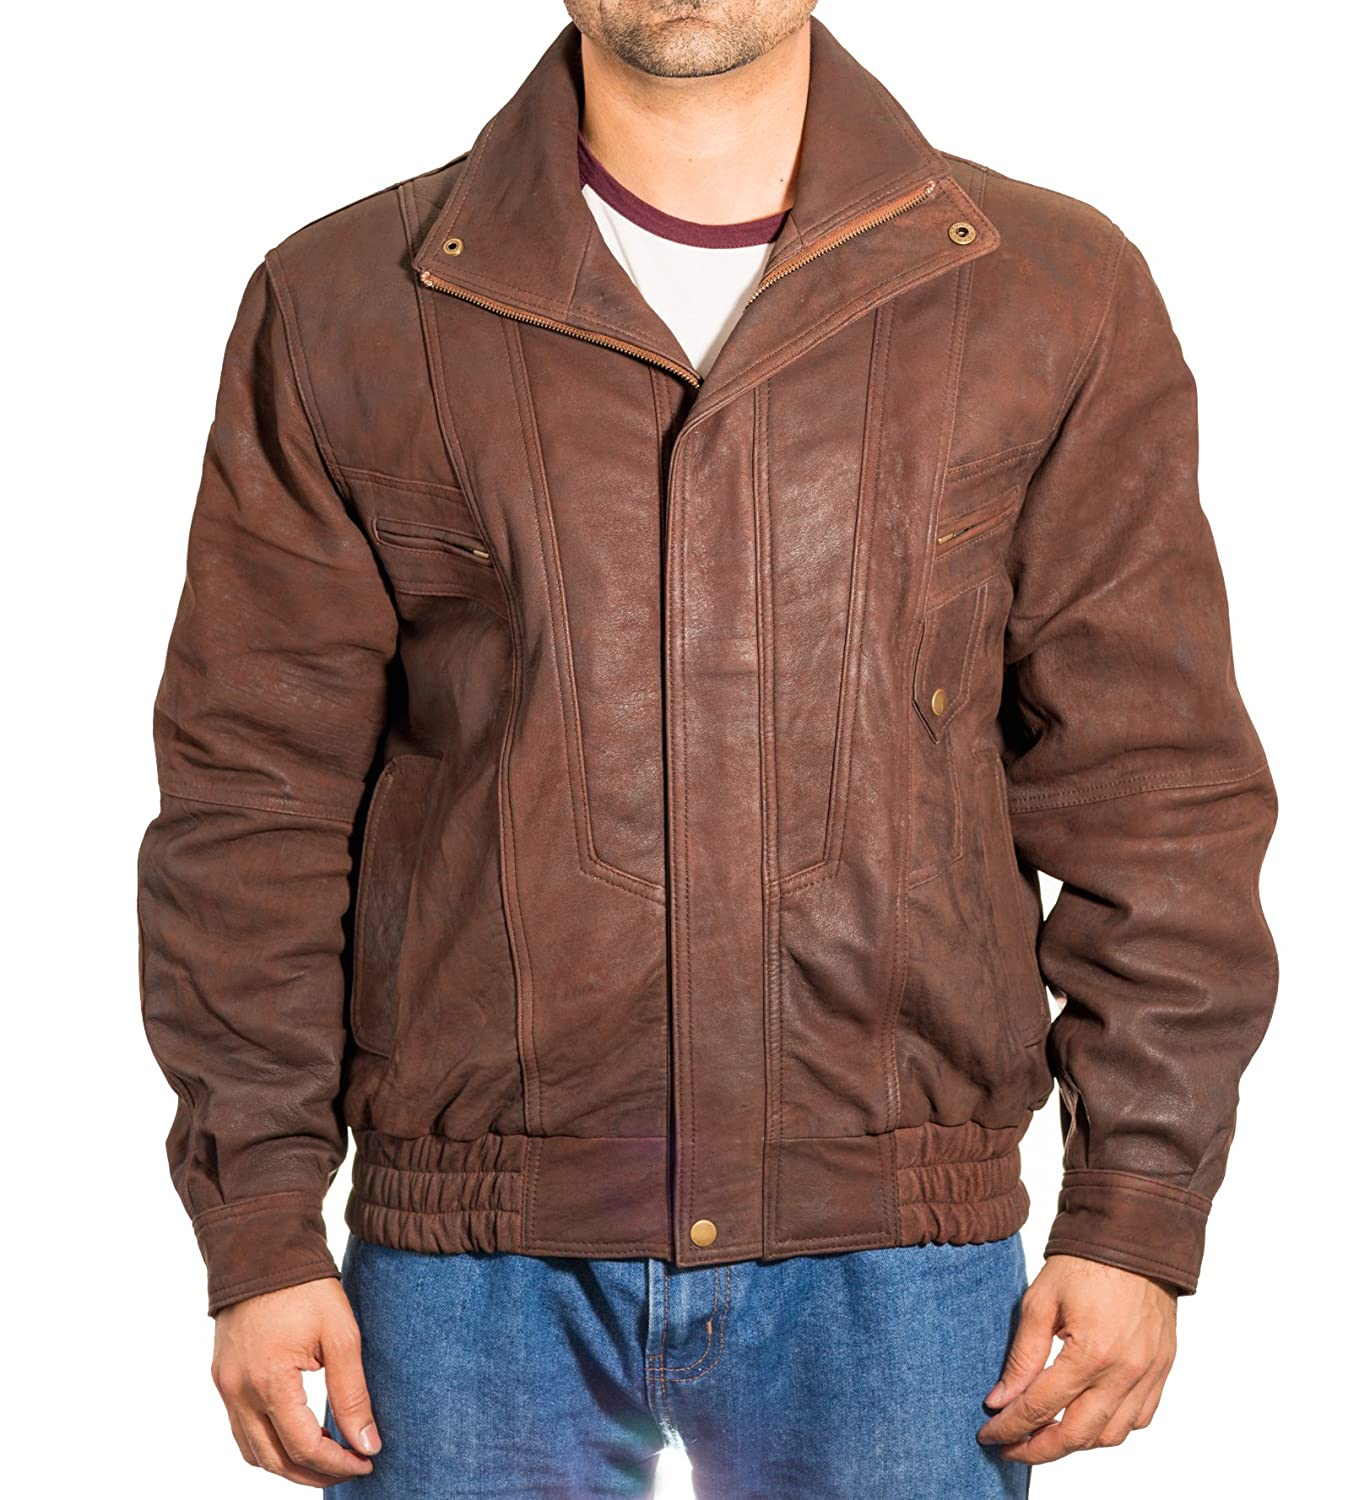 Mens Brown Antique Leather Vintage Classic Retro Blouson Bomber Jacket Coat